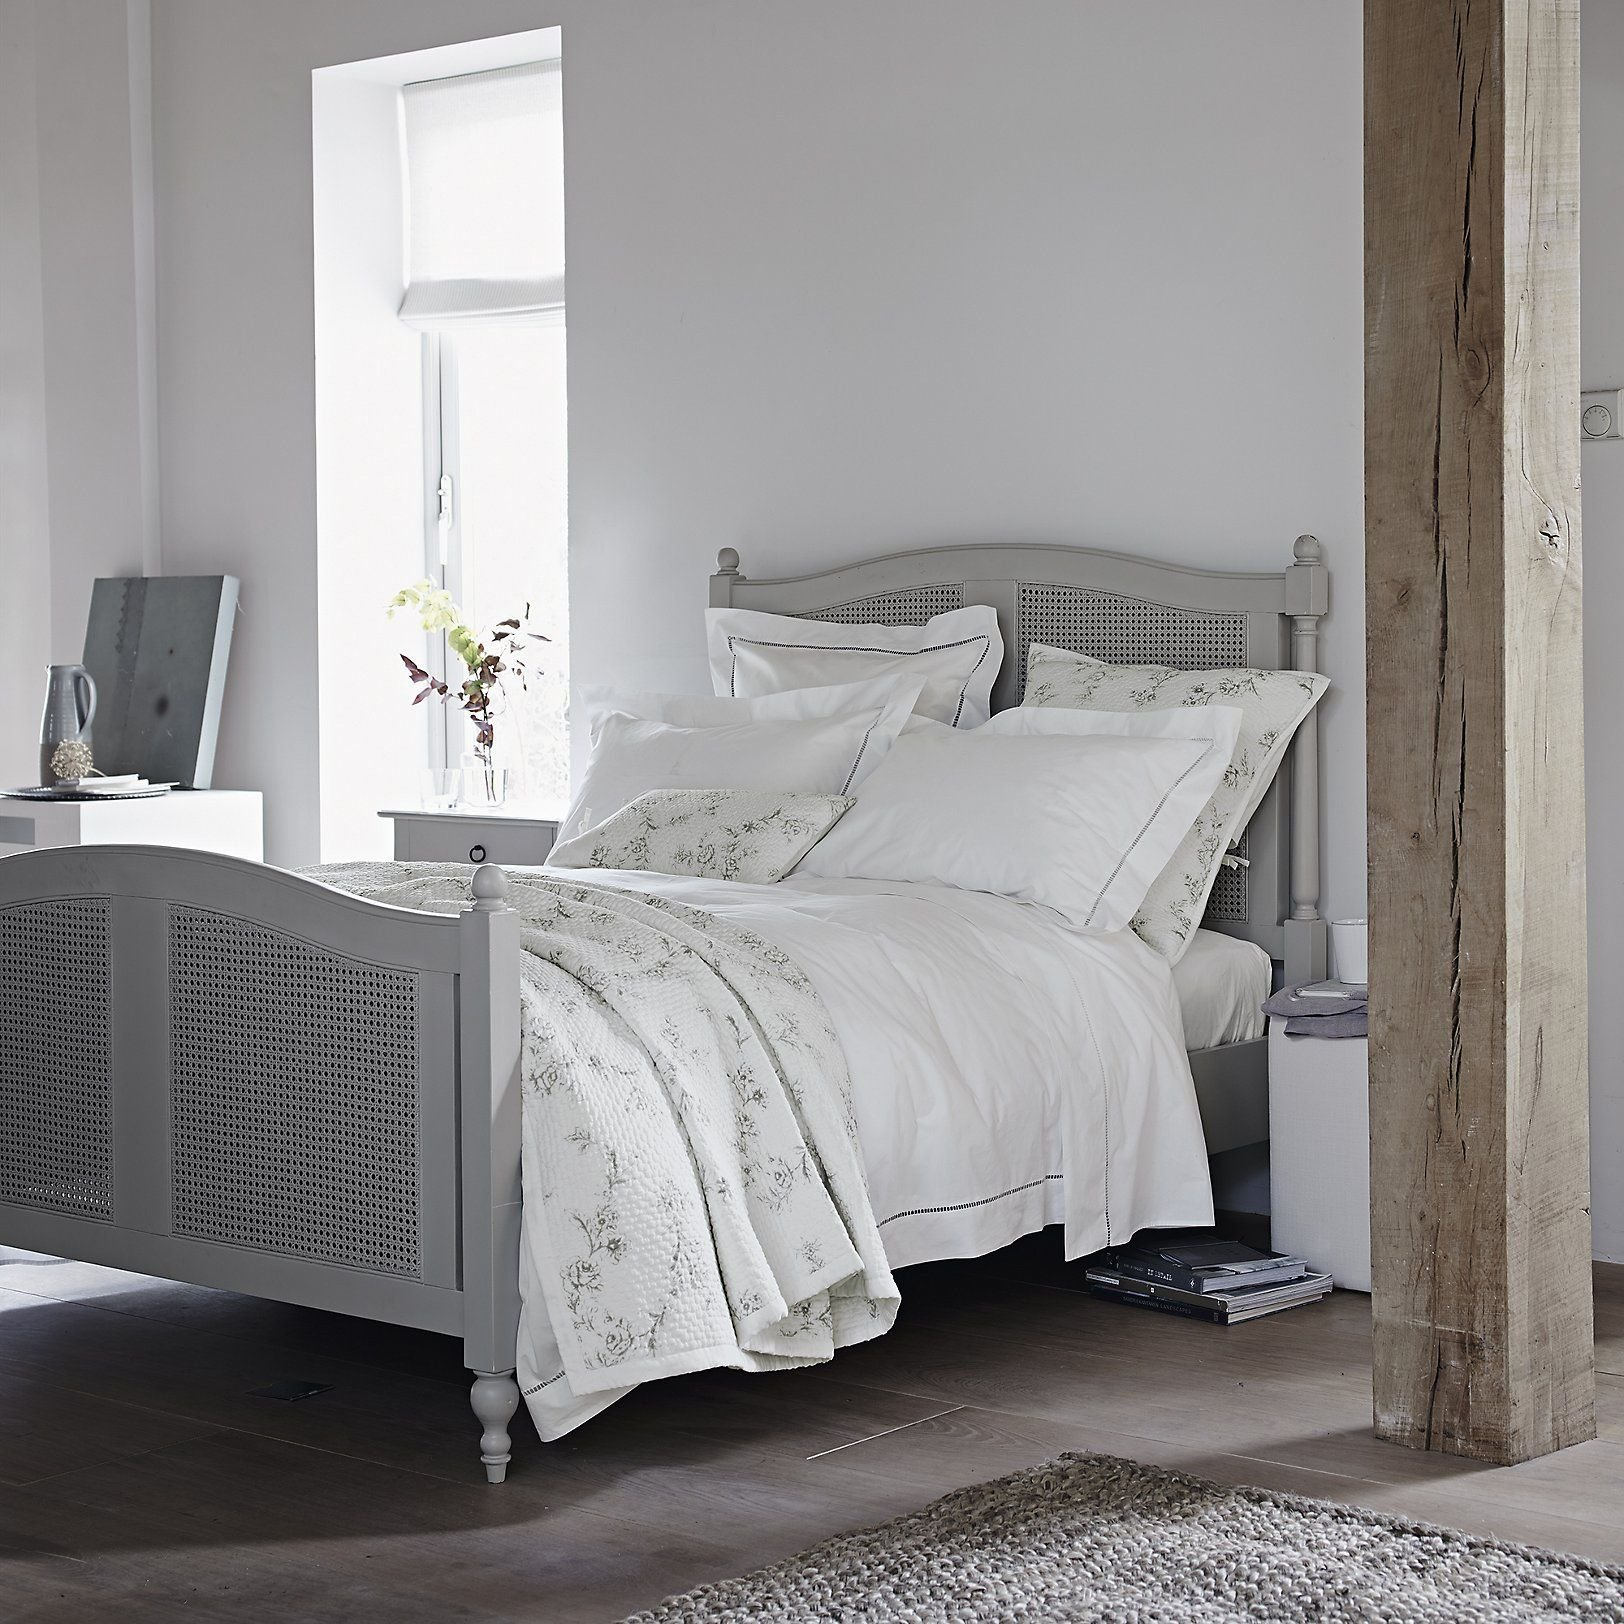 Best Provence Bed Stocked Furniture The White Company In With Pictures